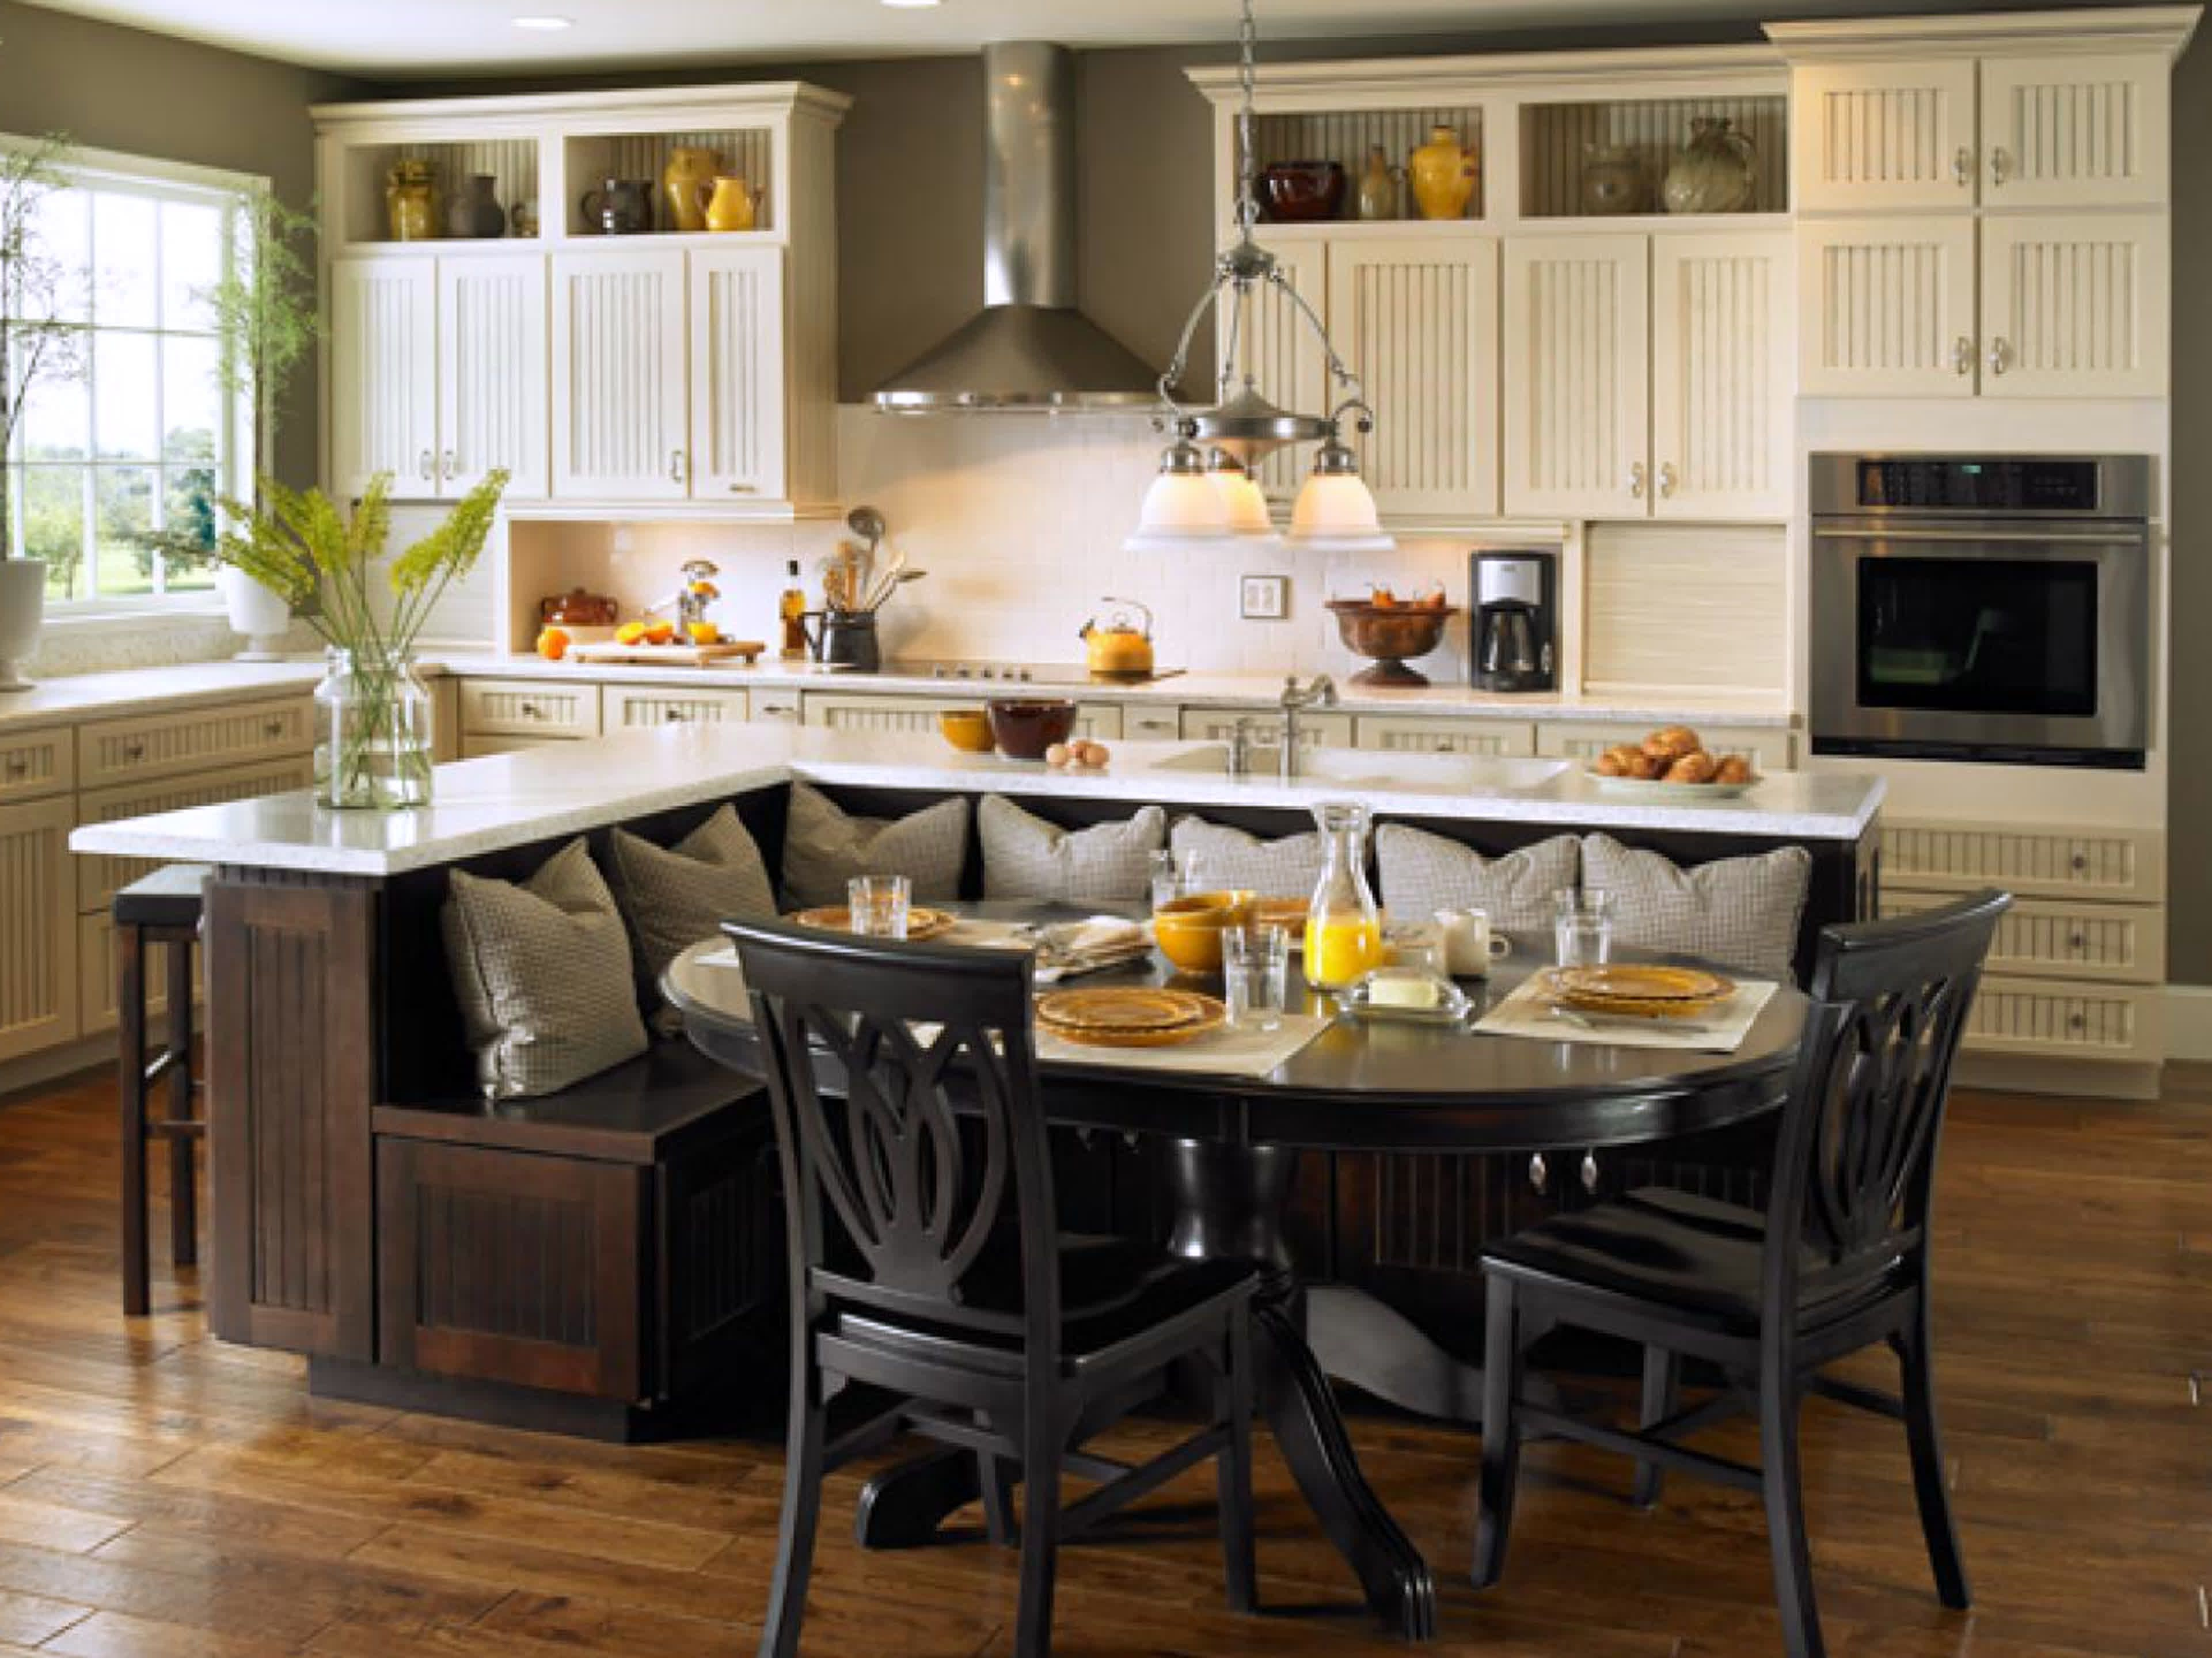 A kitchen island with built in seating is a great option if you